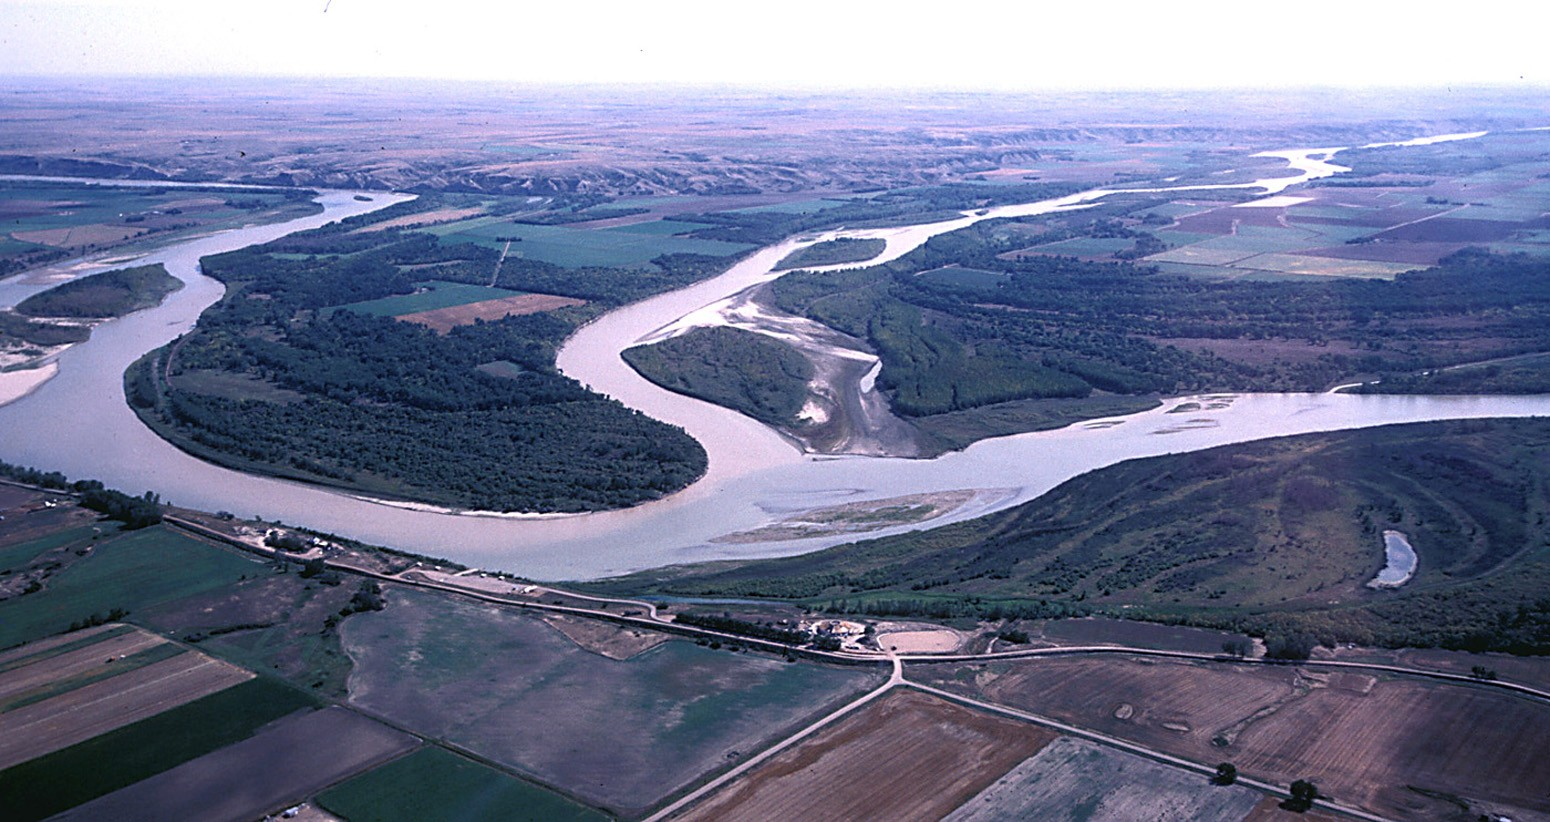 Confluence of the Yellowstone and Missouri Rivers